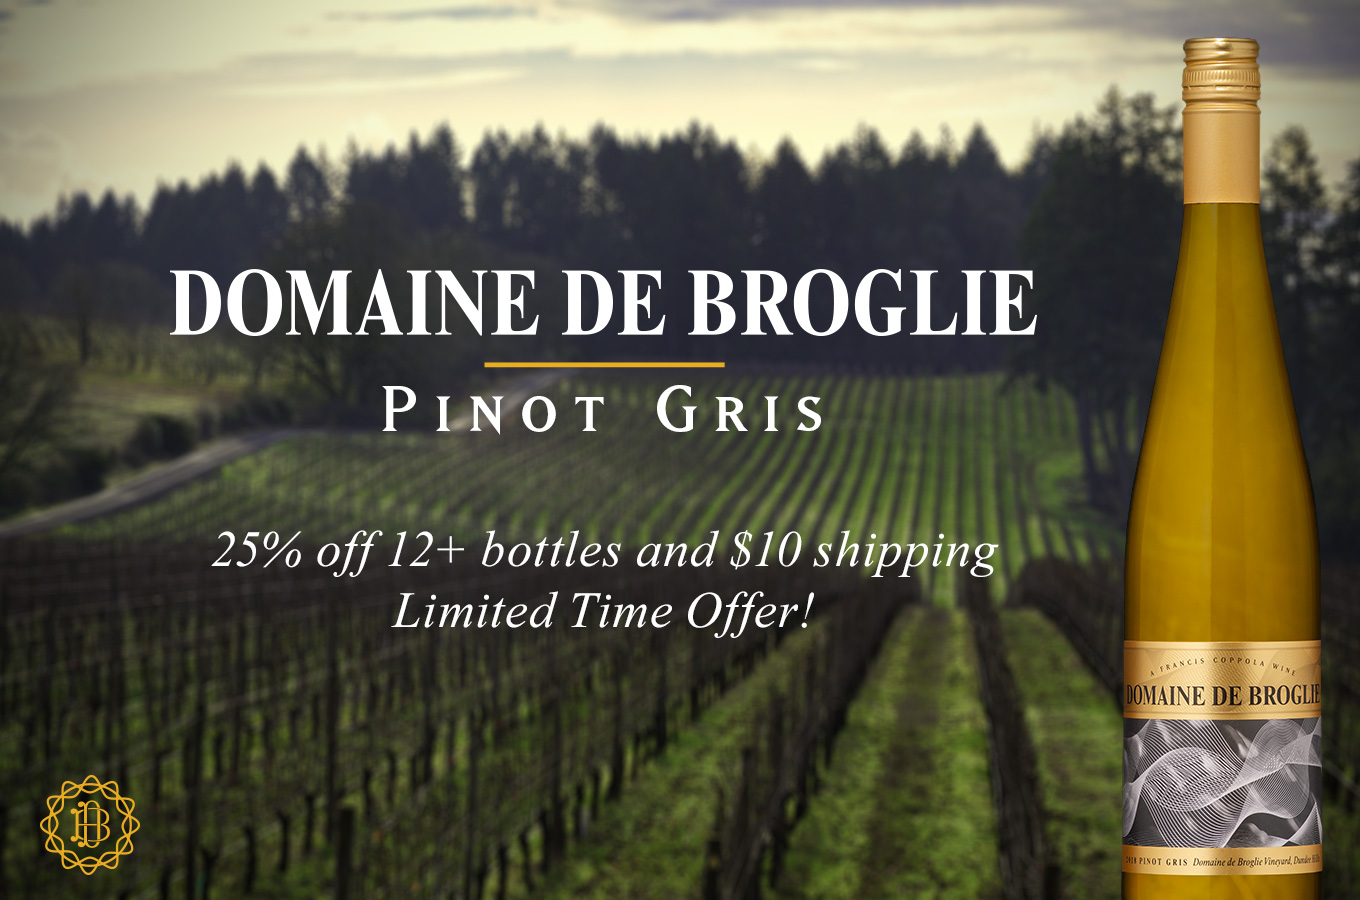 Domaine de Broglie Pinot Gris, 25% off 12+ bottles and $10 shipping!